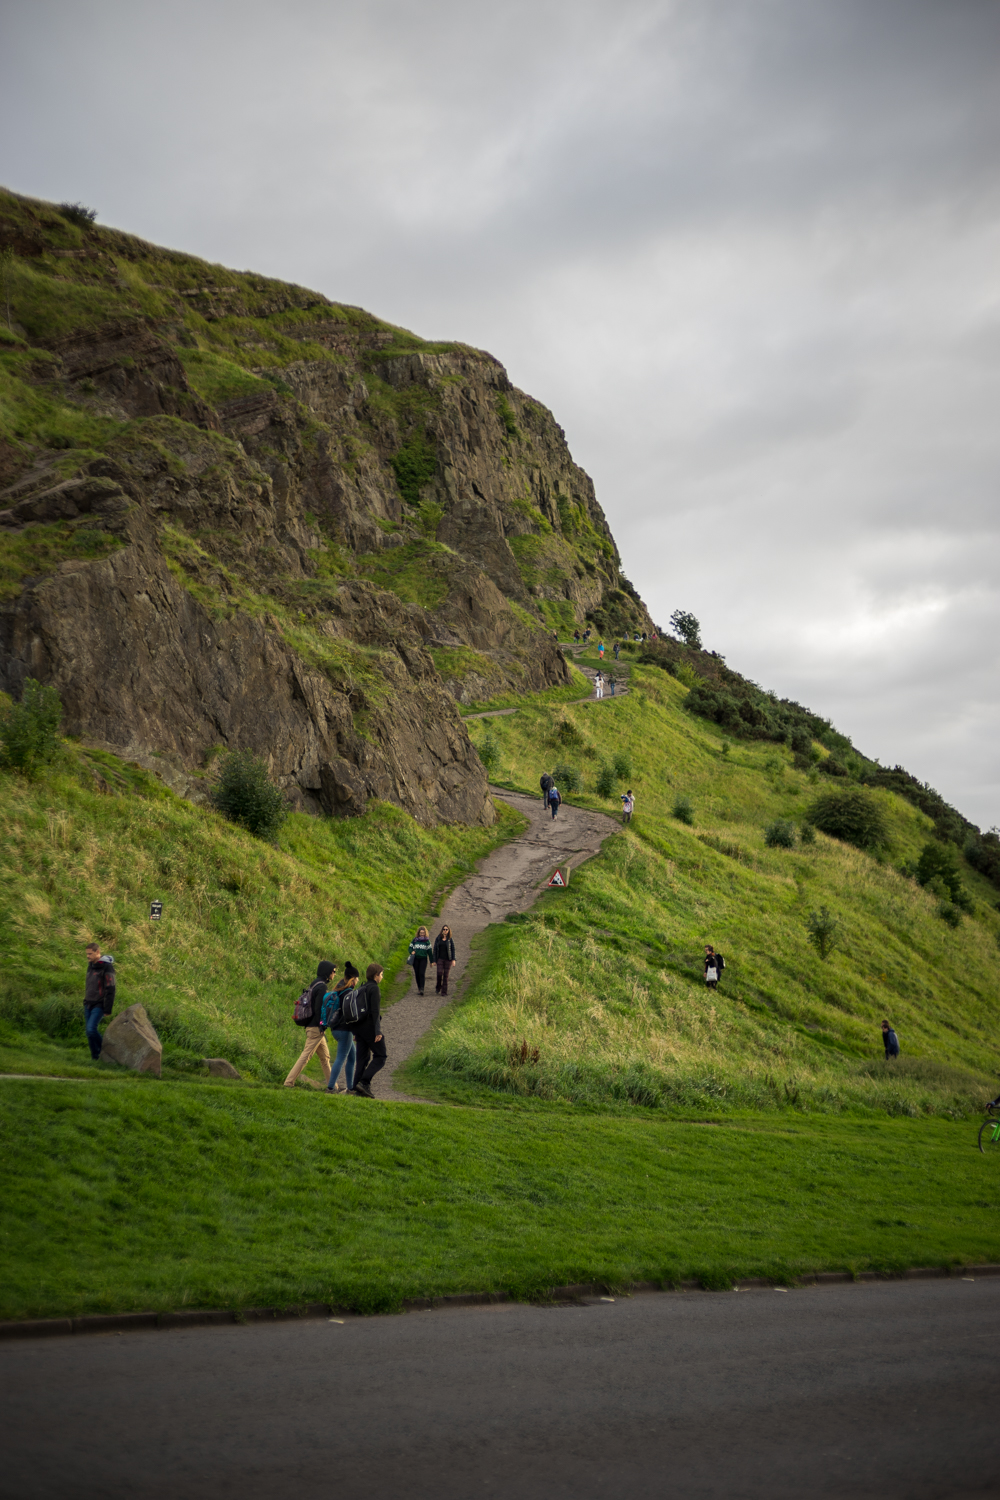 The beginning of the ascent up the face of Arthur's Seat